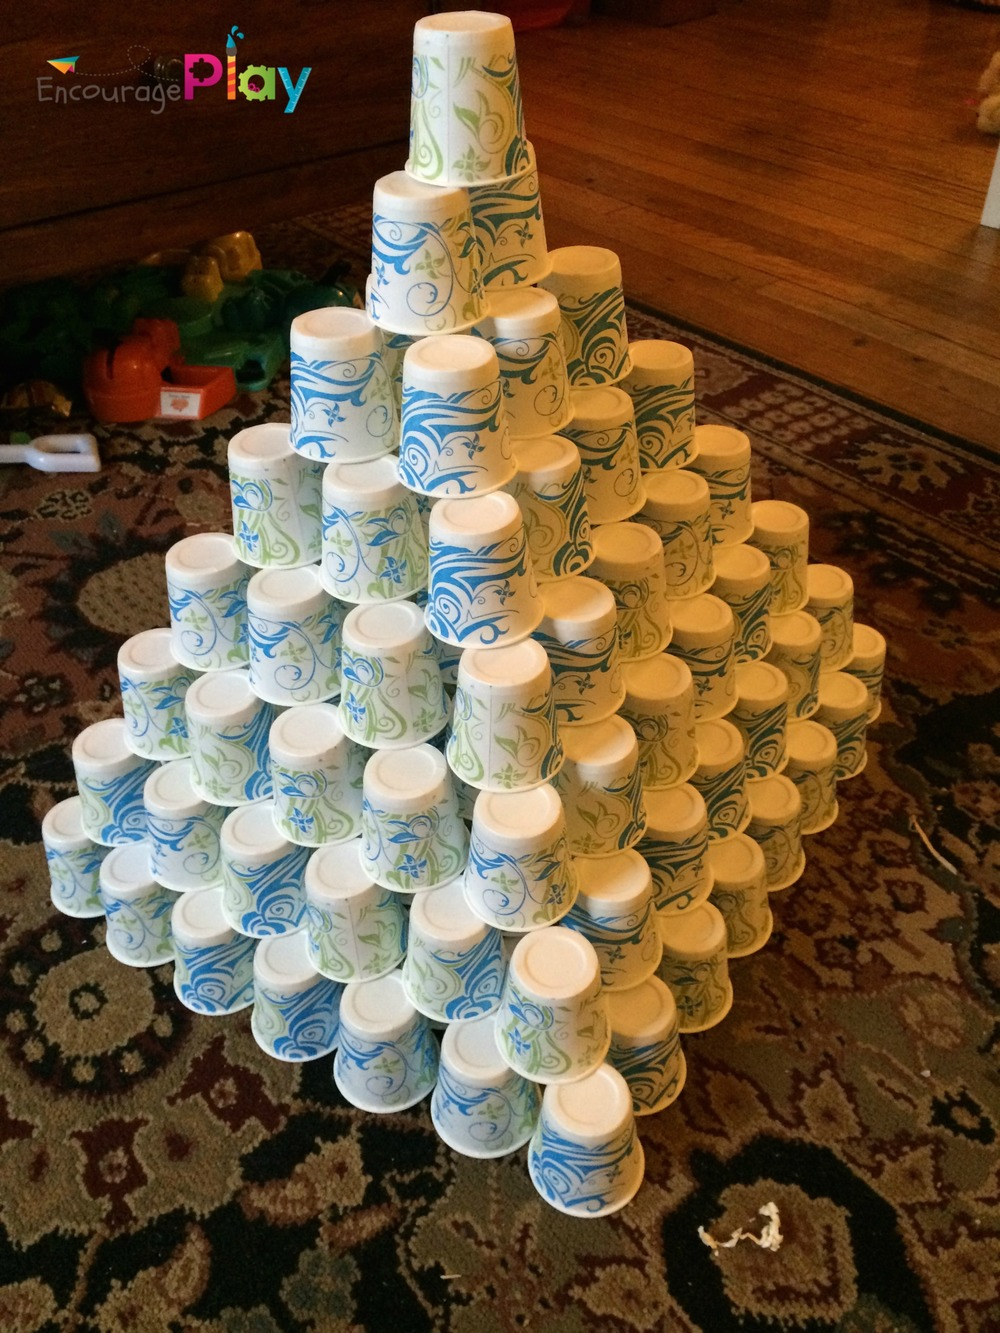 pyramid of cups from Encourage Play.jpg